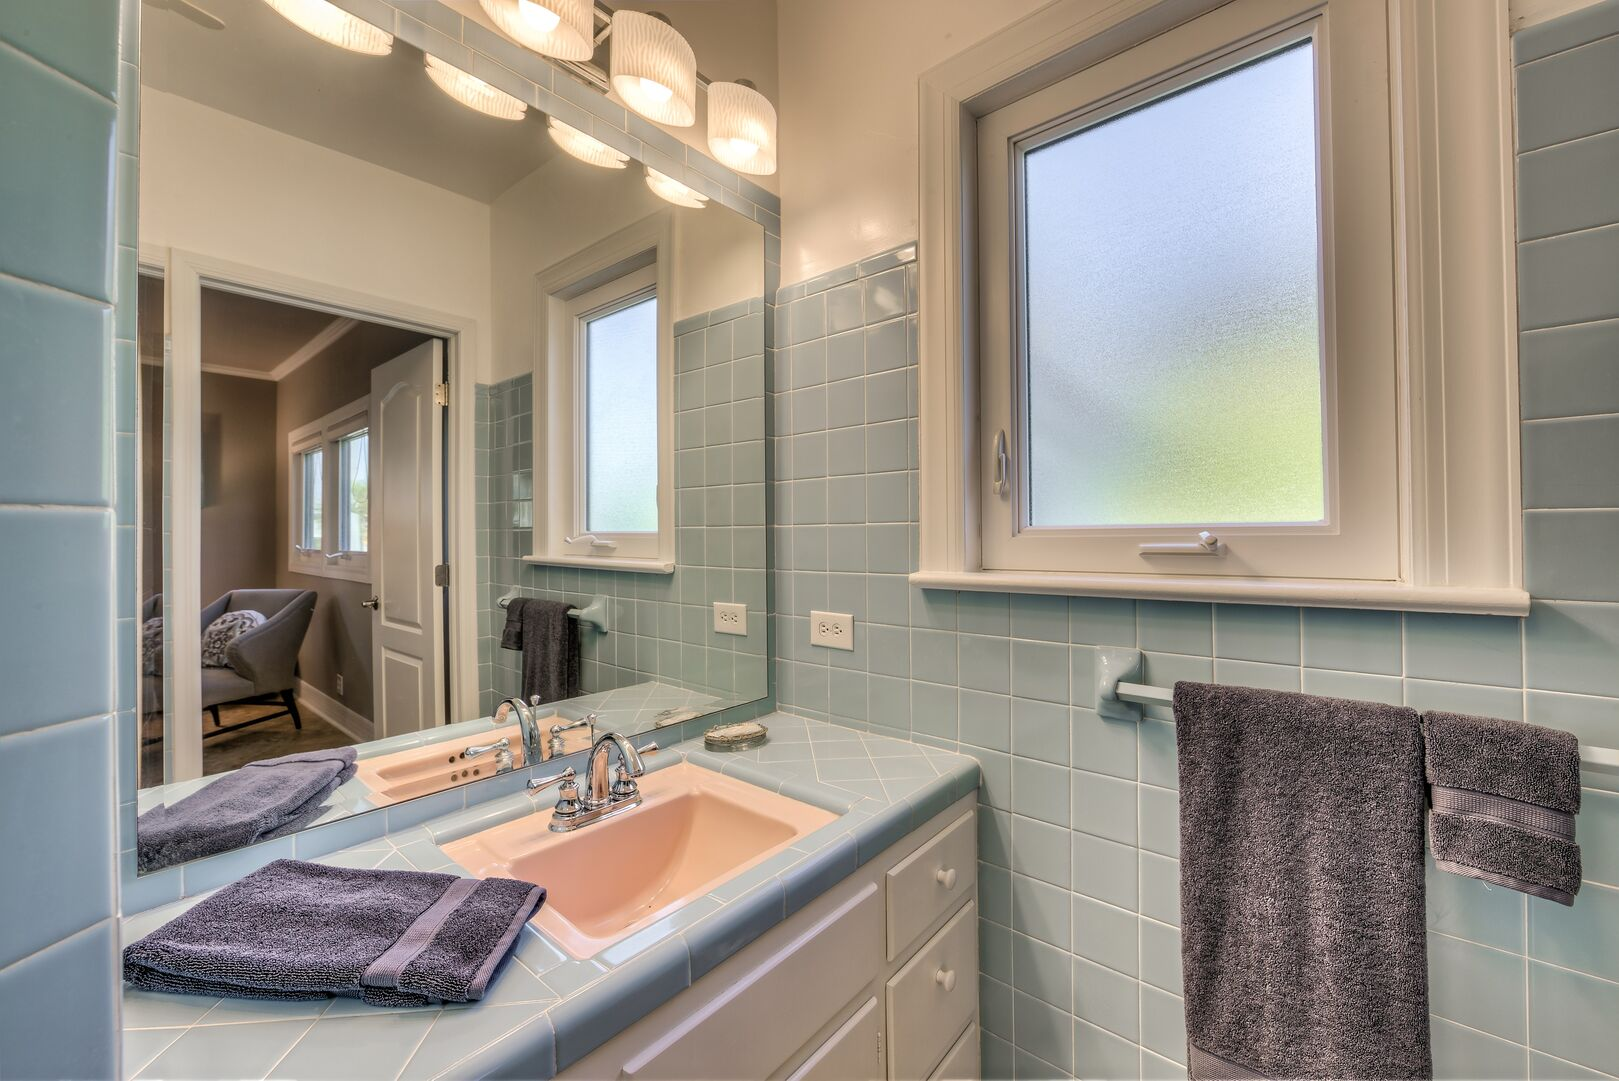 Bathroom in our Fort Myers cottage